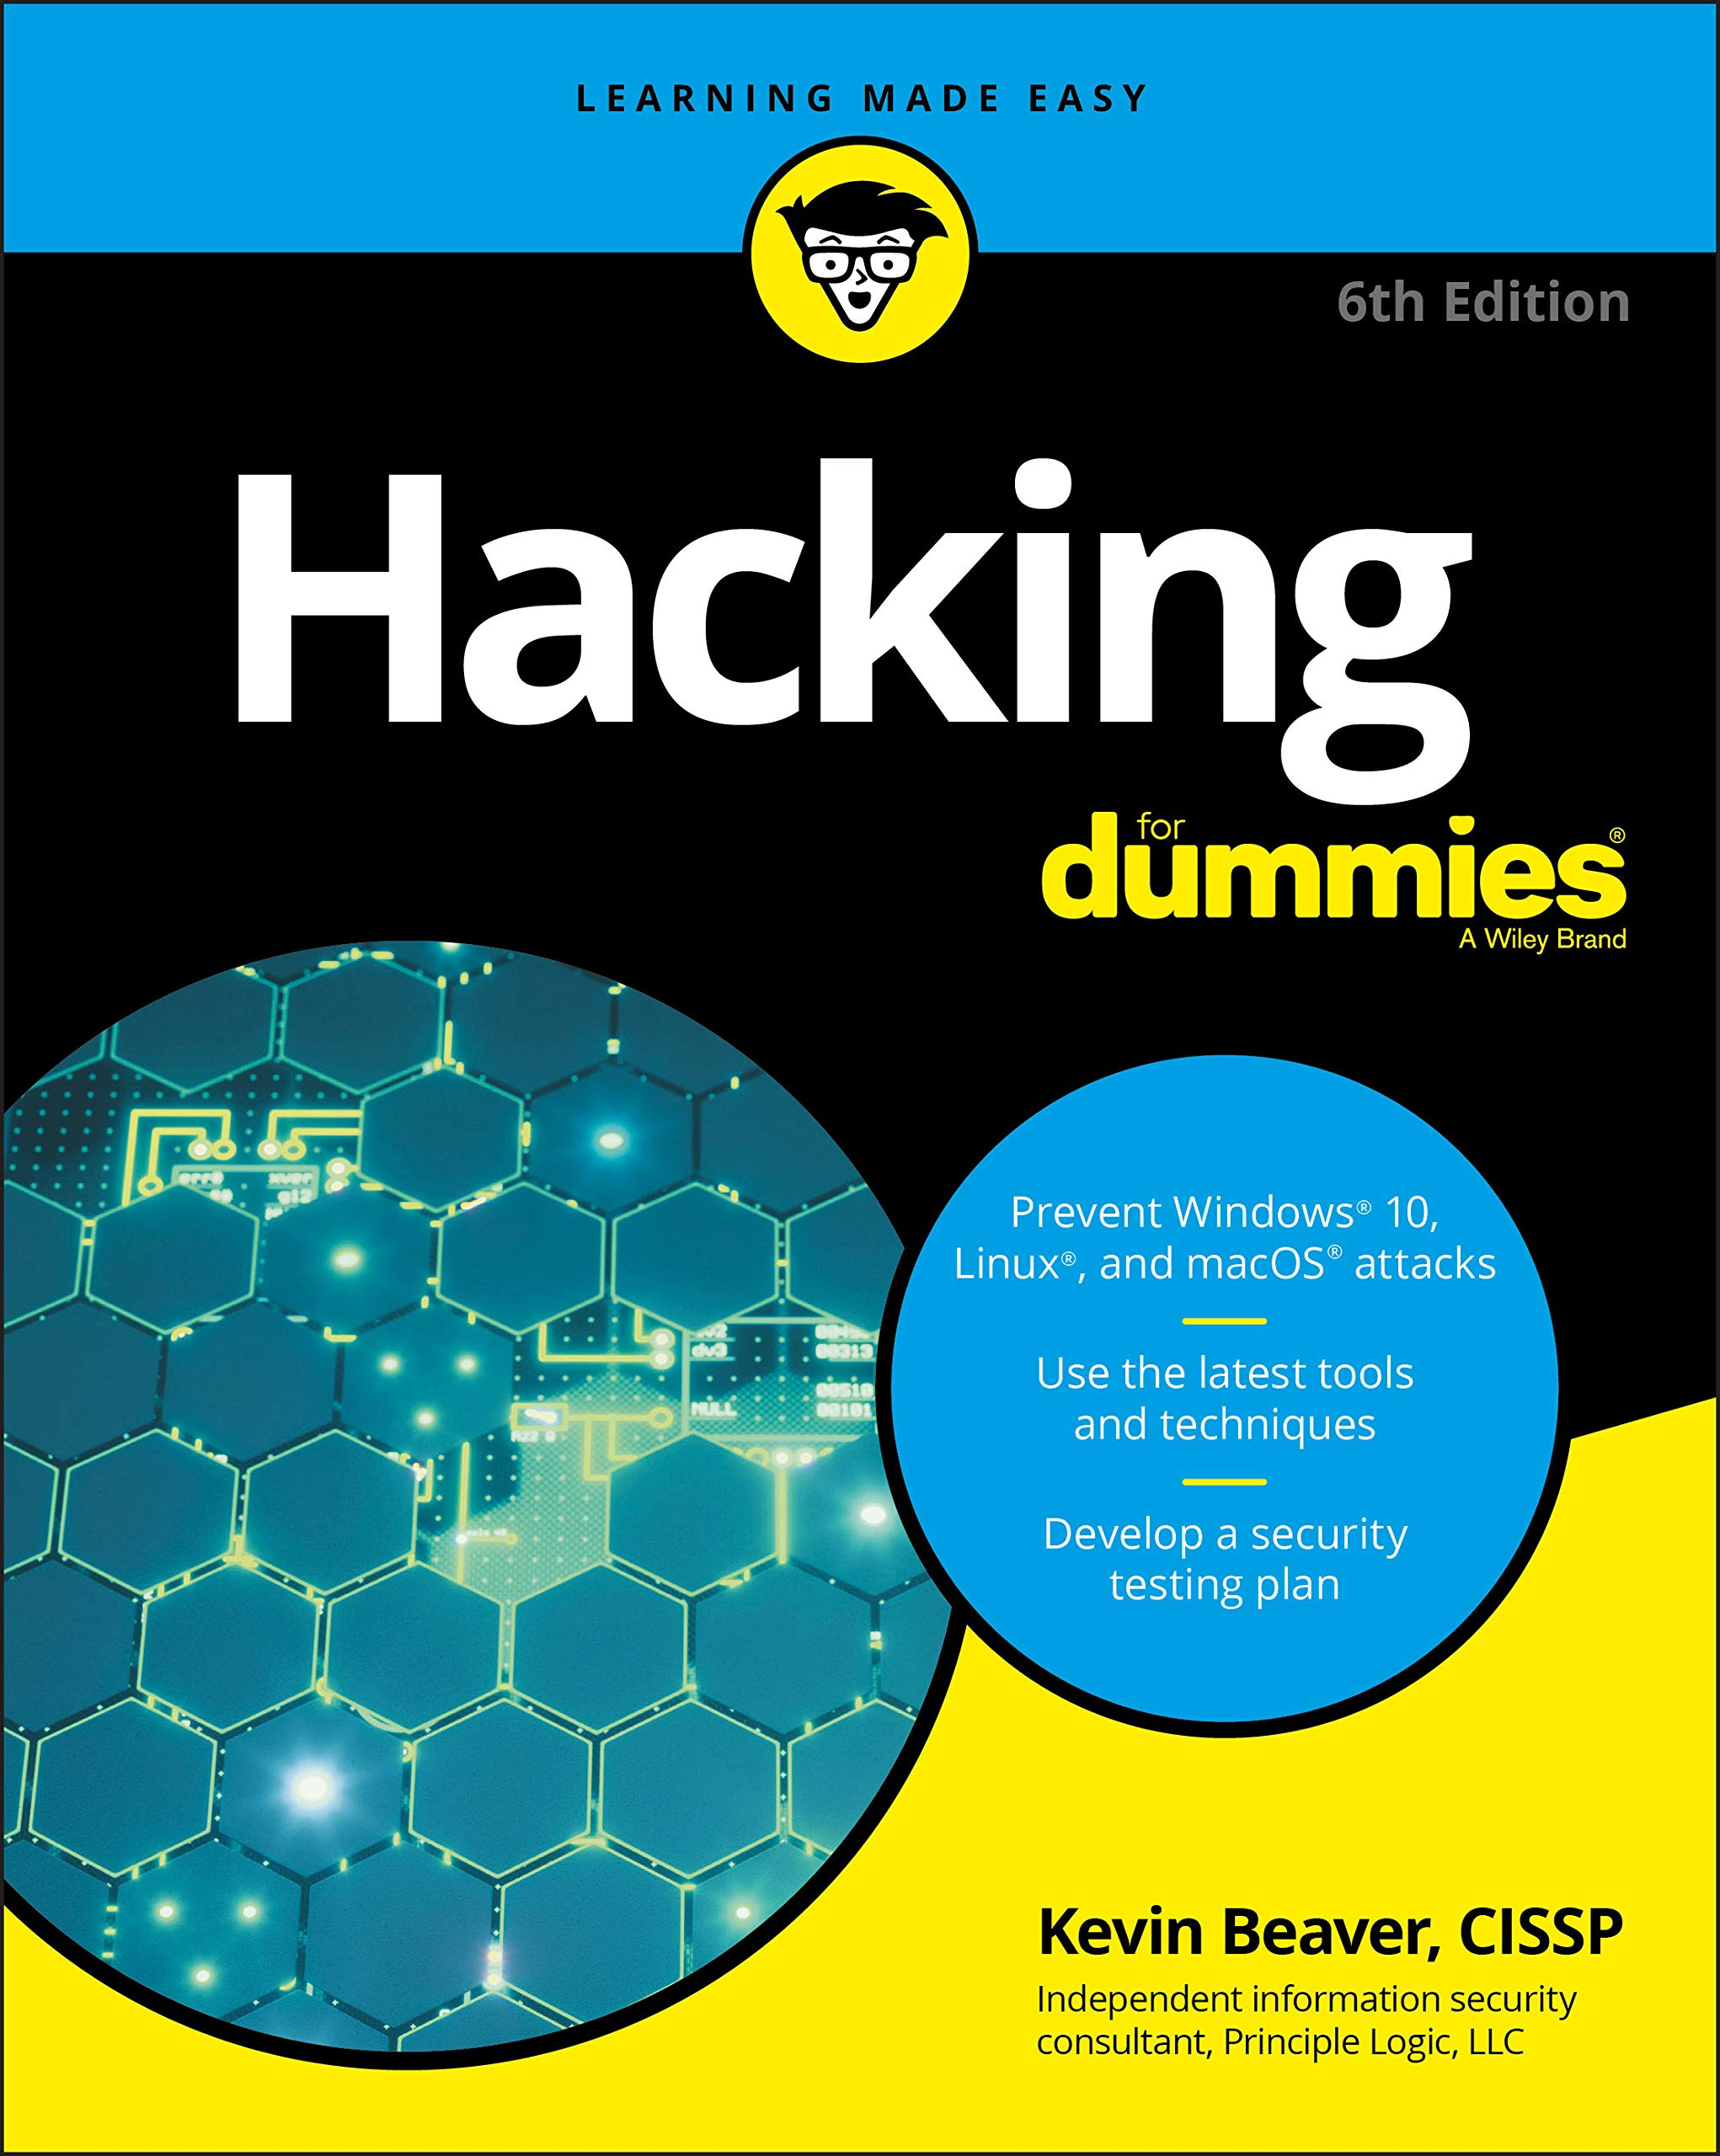 Hacker bitcoins for dummies bet on soldier download free